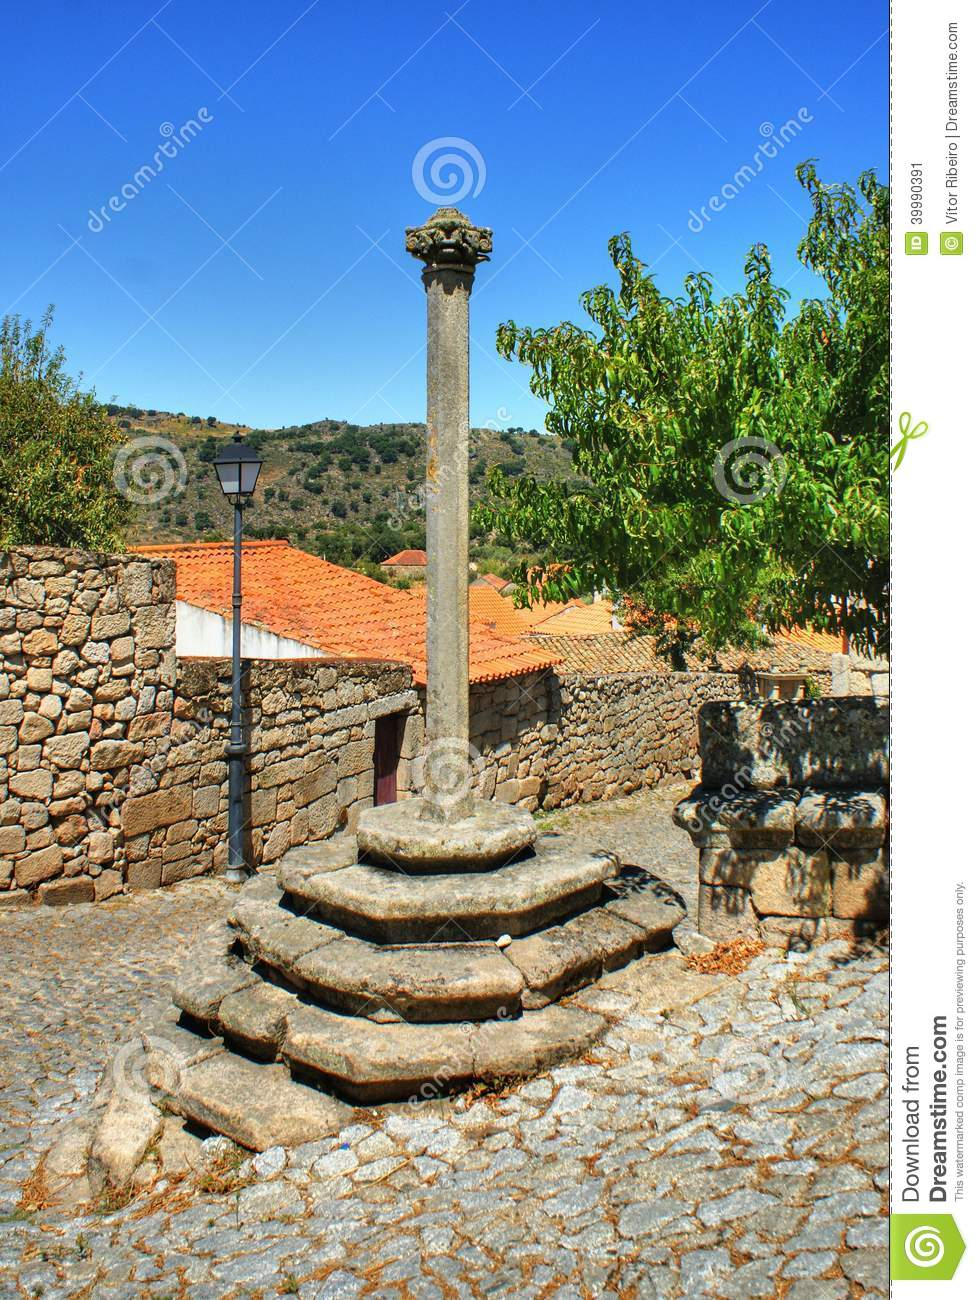 Download Marialva pillory in Meda, stock image. Image of historical - 39990391